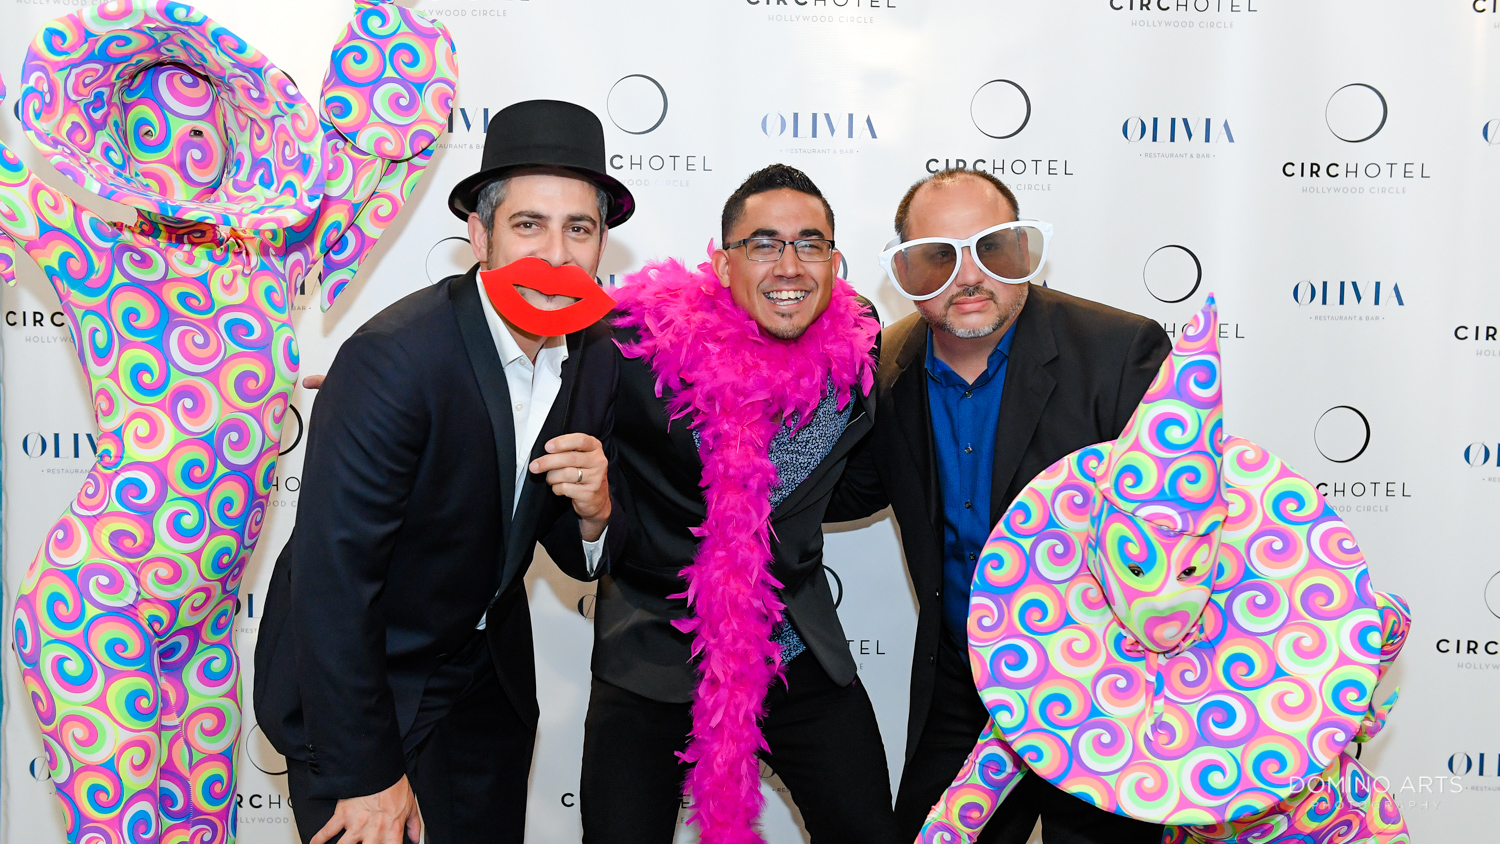 Fun photo booth pictures at Circ Hotel Grand Opening Corporate Event in Hollywood, Florida